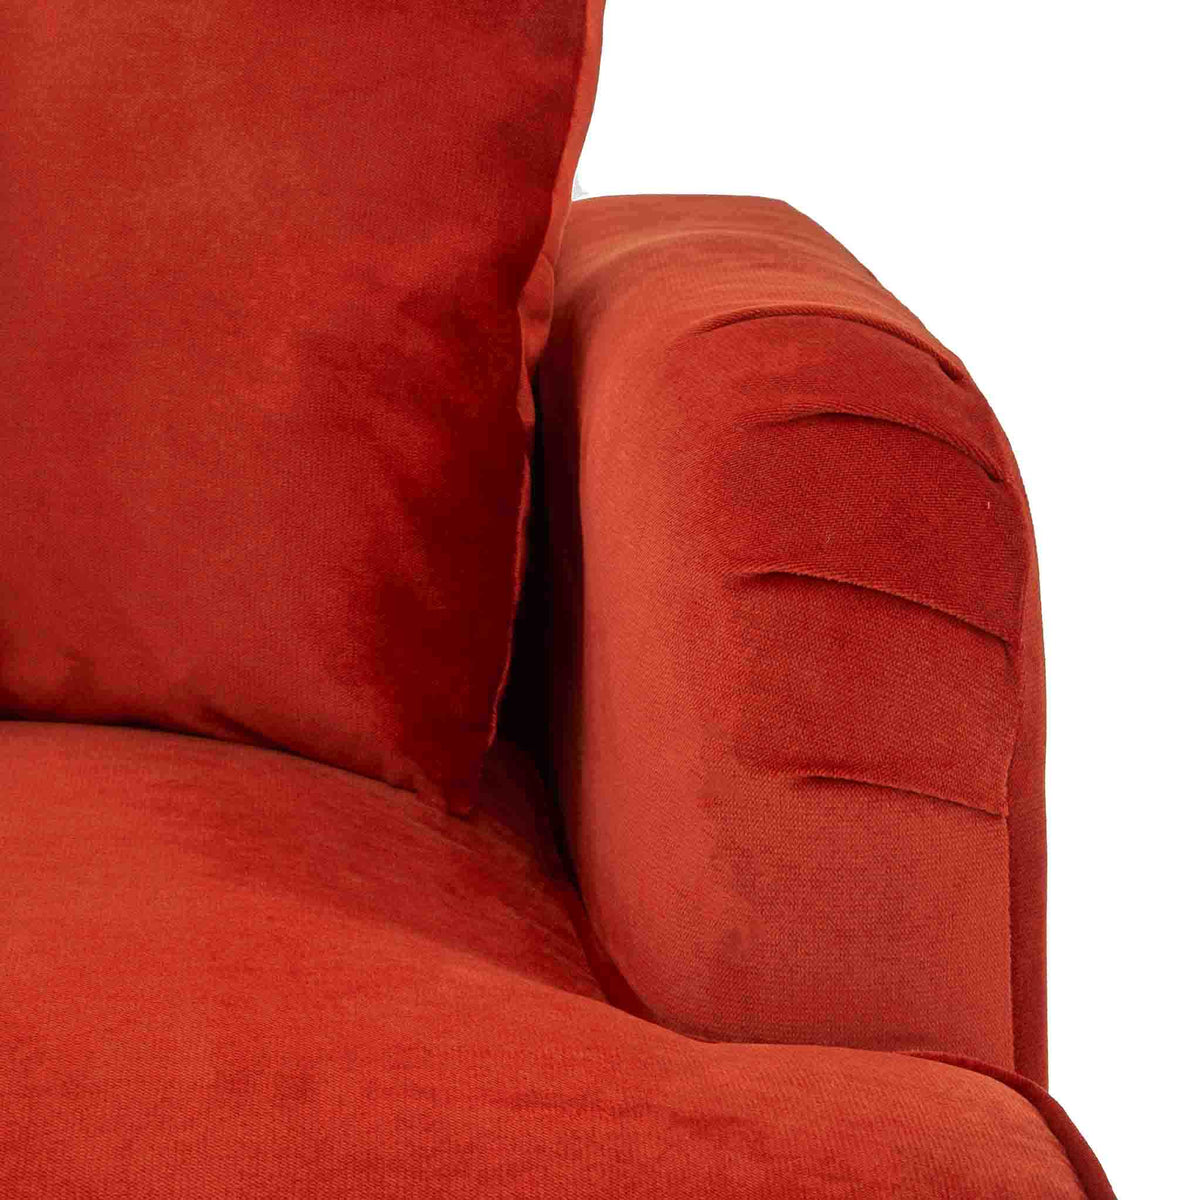 close up of the English rolled arms on the Piper Apricot 2 Seater Sofa from Roseland Furniture